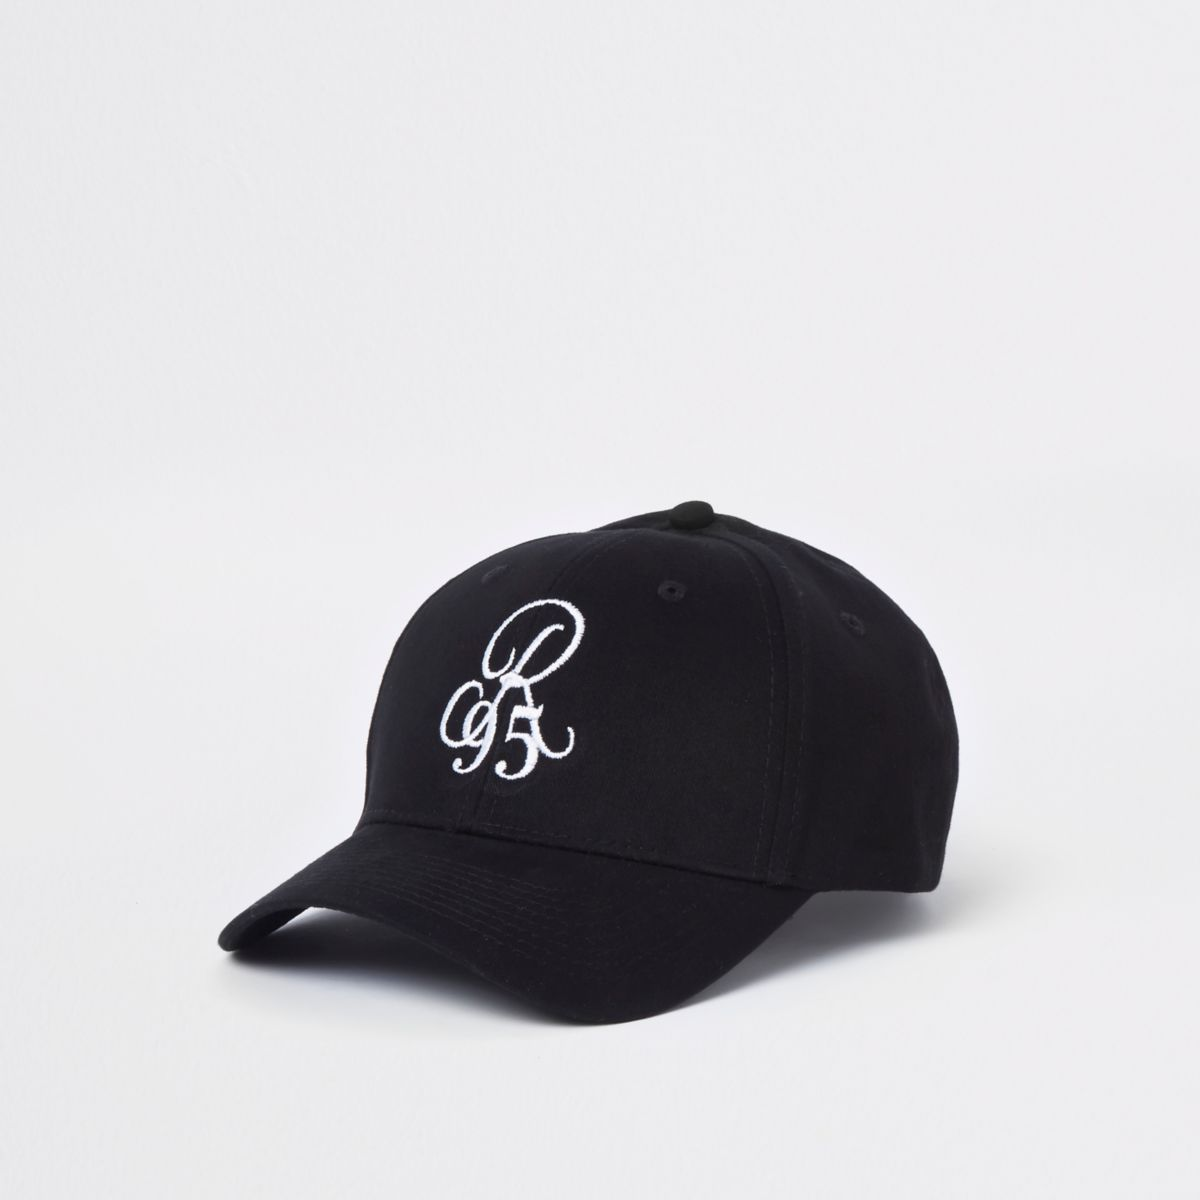 Black 'R95' embroidered baseball cap